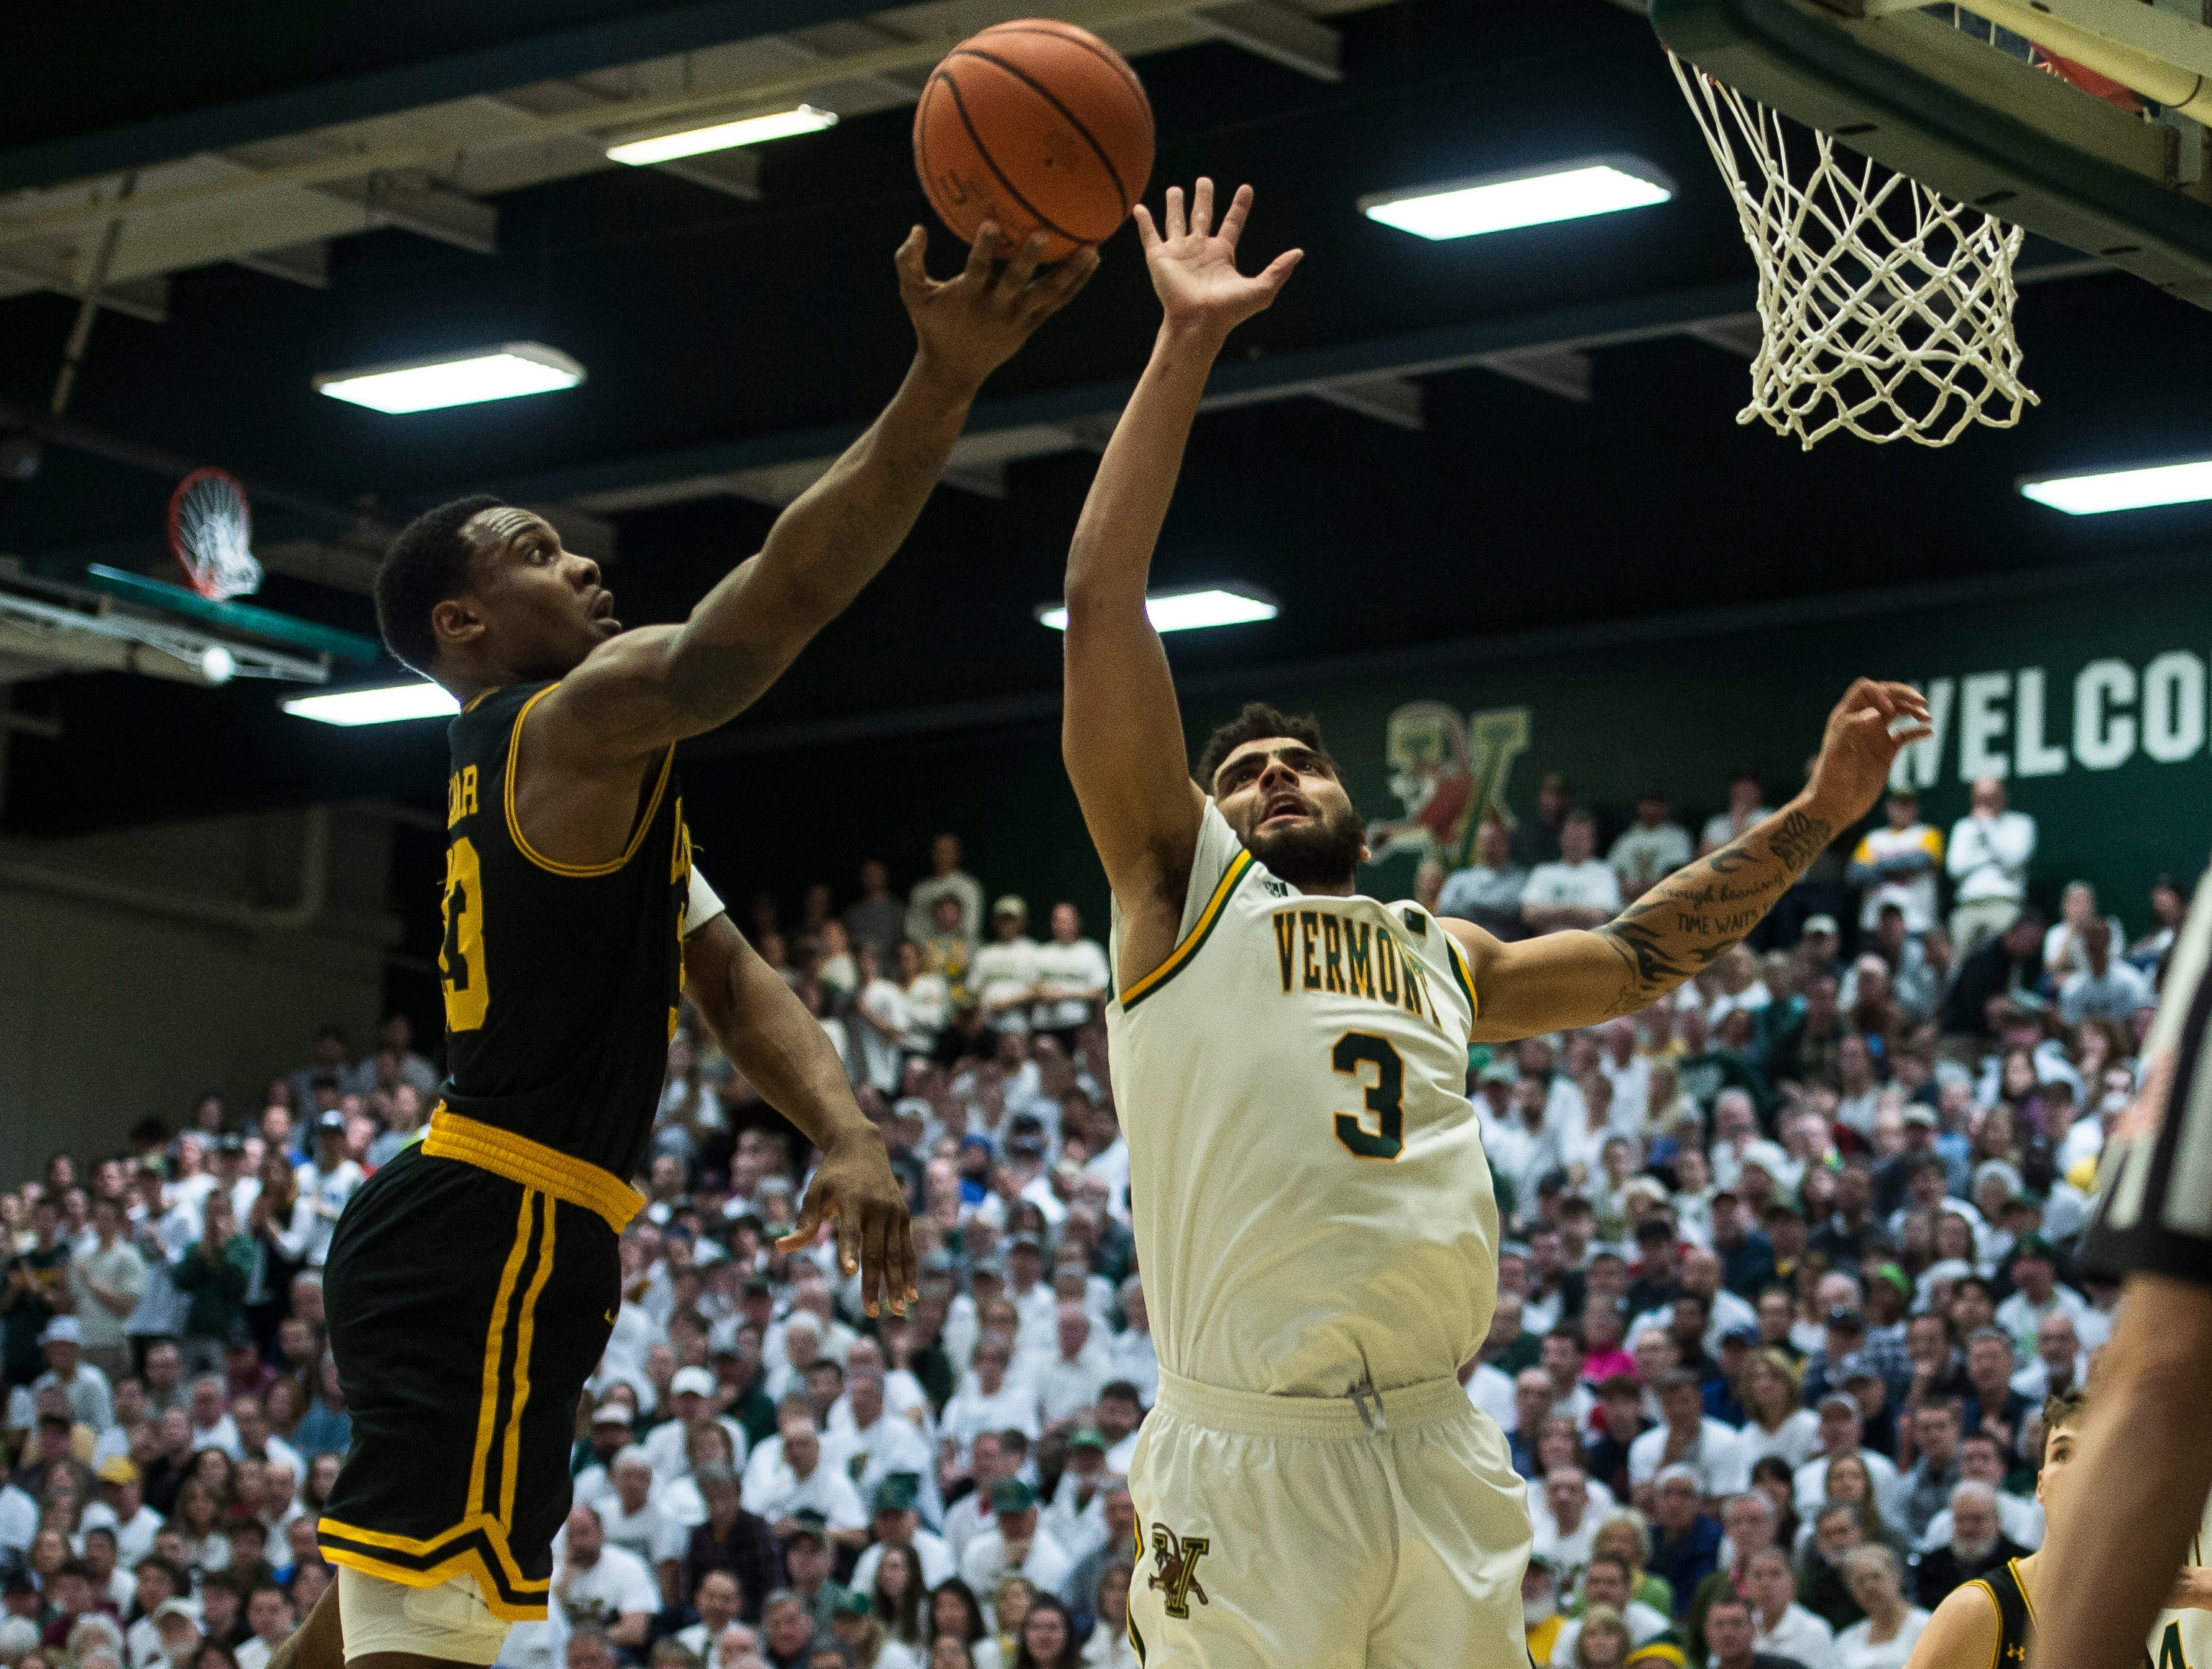 UVM Men's basketball #3 Anthony Lamb denies UMBC #33 Arkel Lamar during the America East Championship in Burlington, Vt., on Saturday, March 16, 2019. UVM won, 66-49 and will head to the NCAA March Madness Tournament.